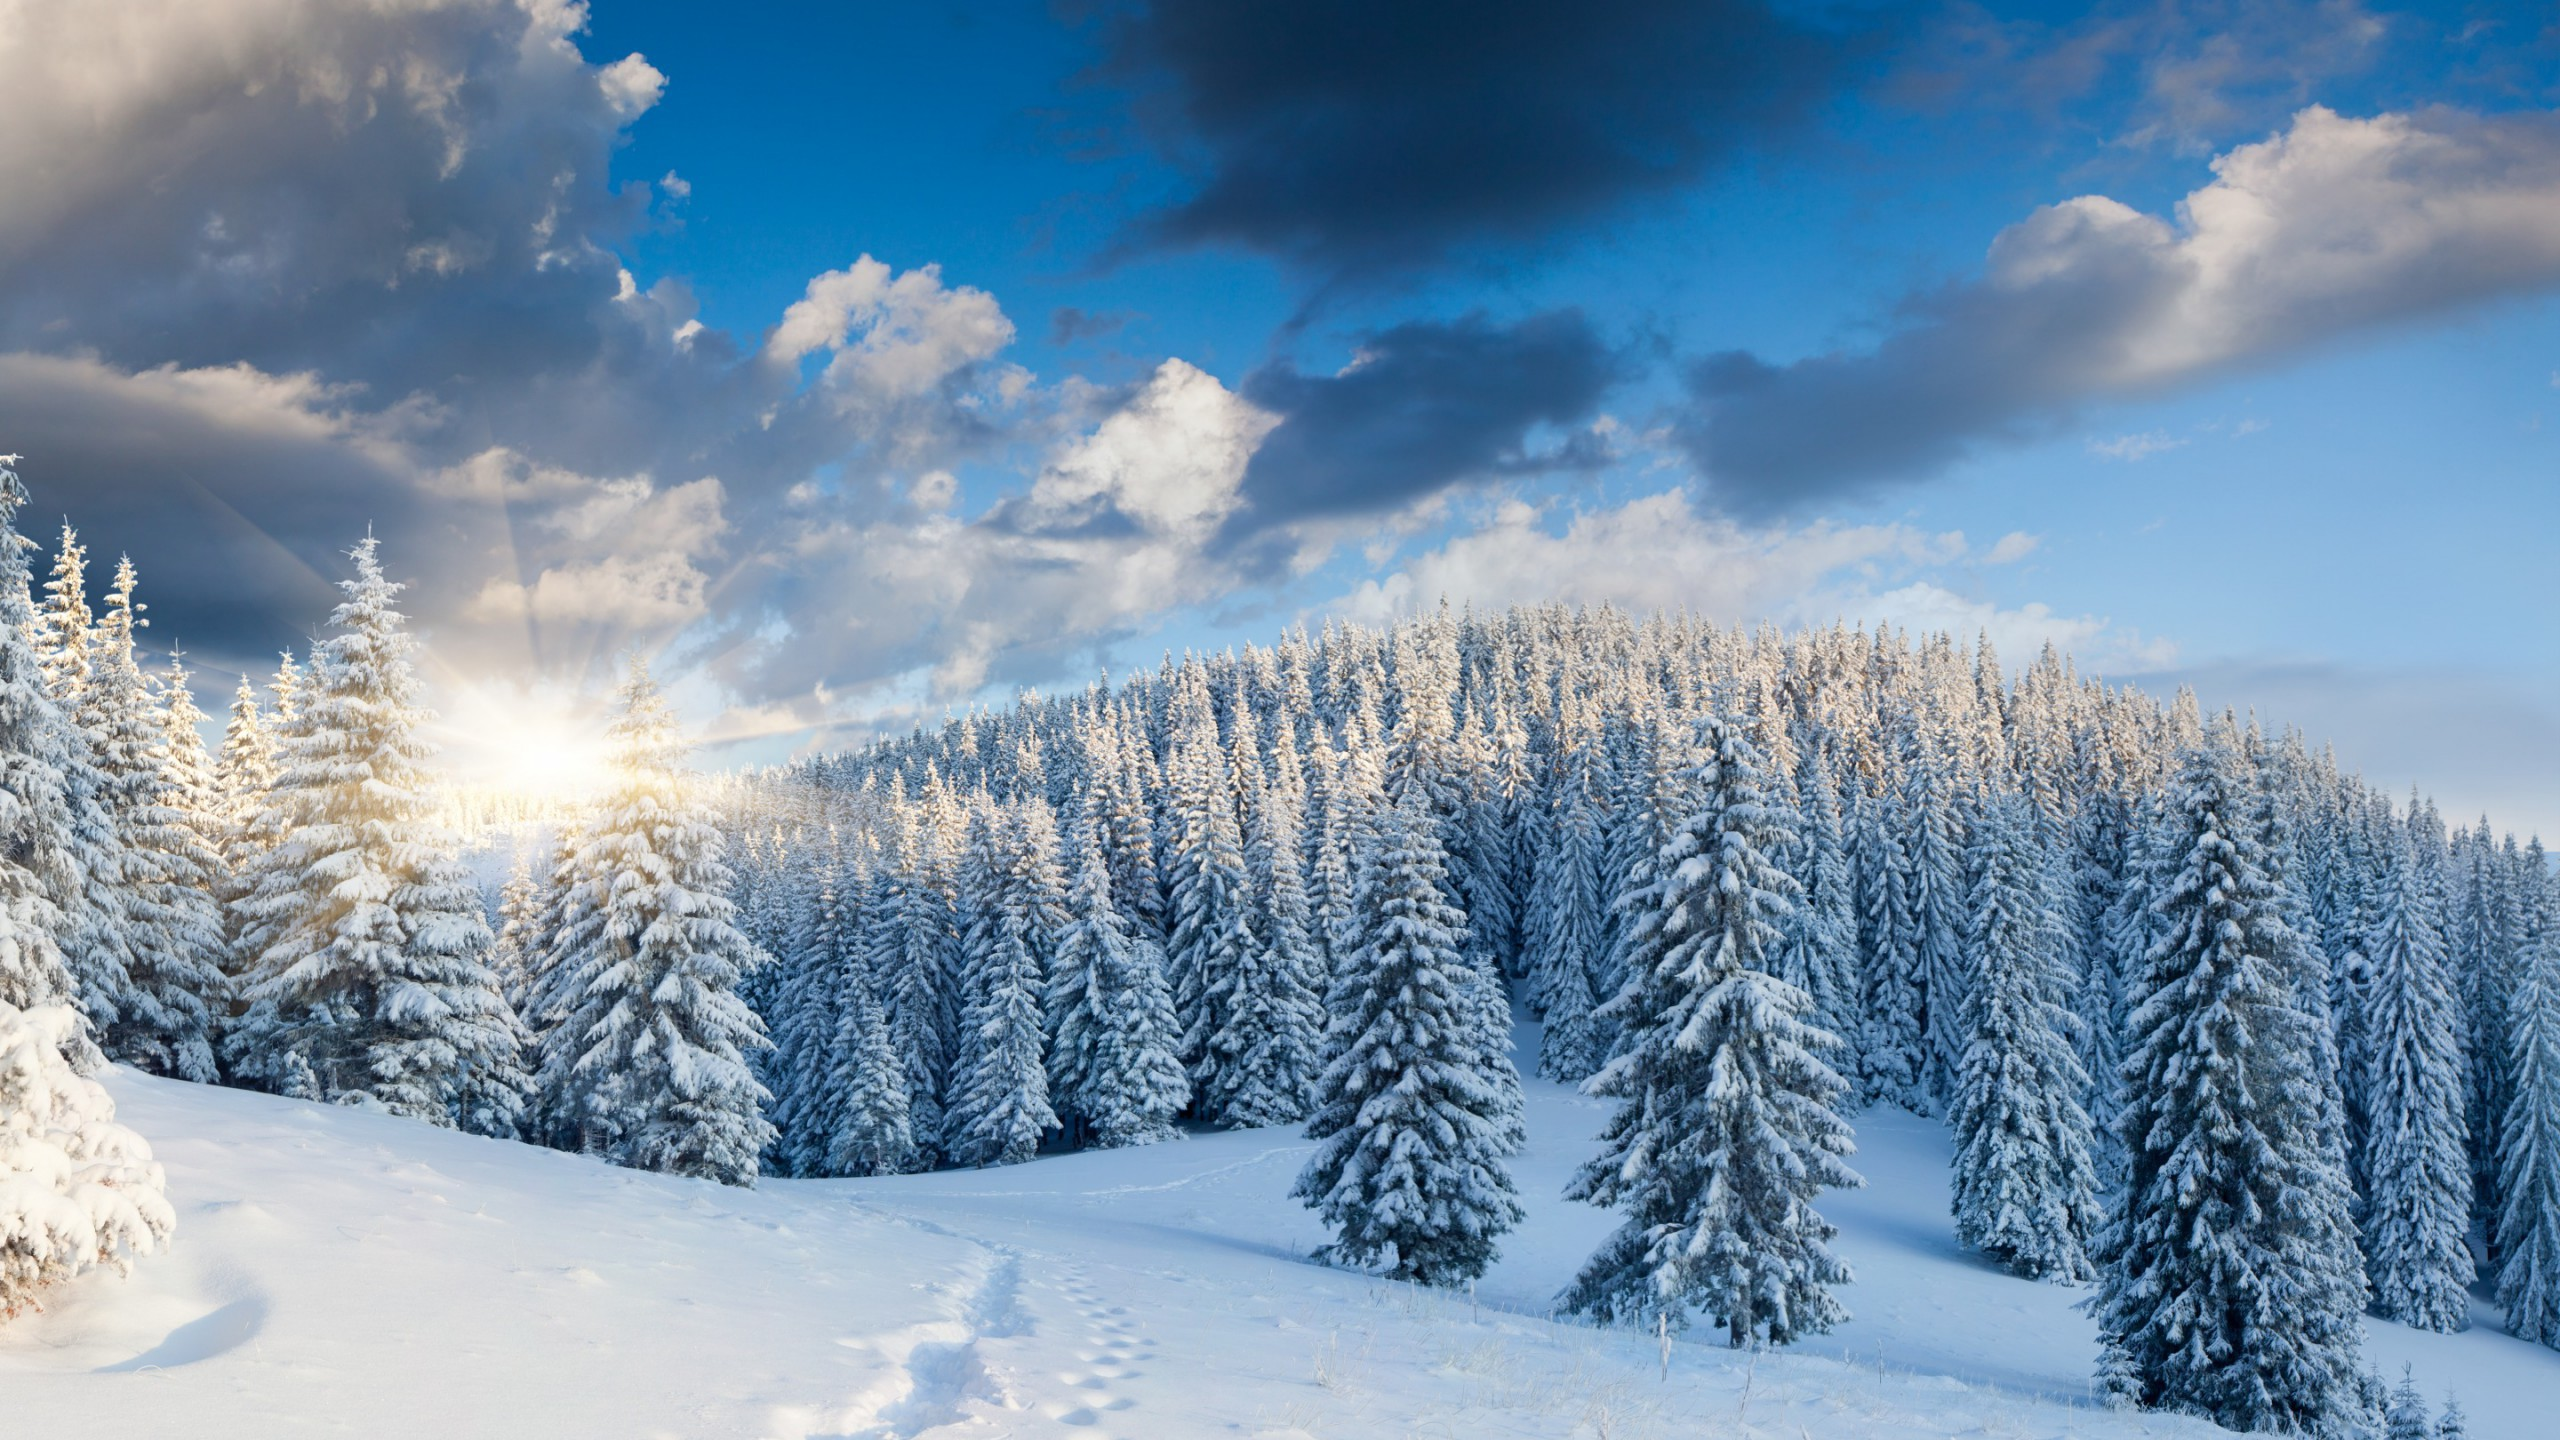 Winter Forest Wallpapers Images Photos Pictures Backgrounds 2560x1440